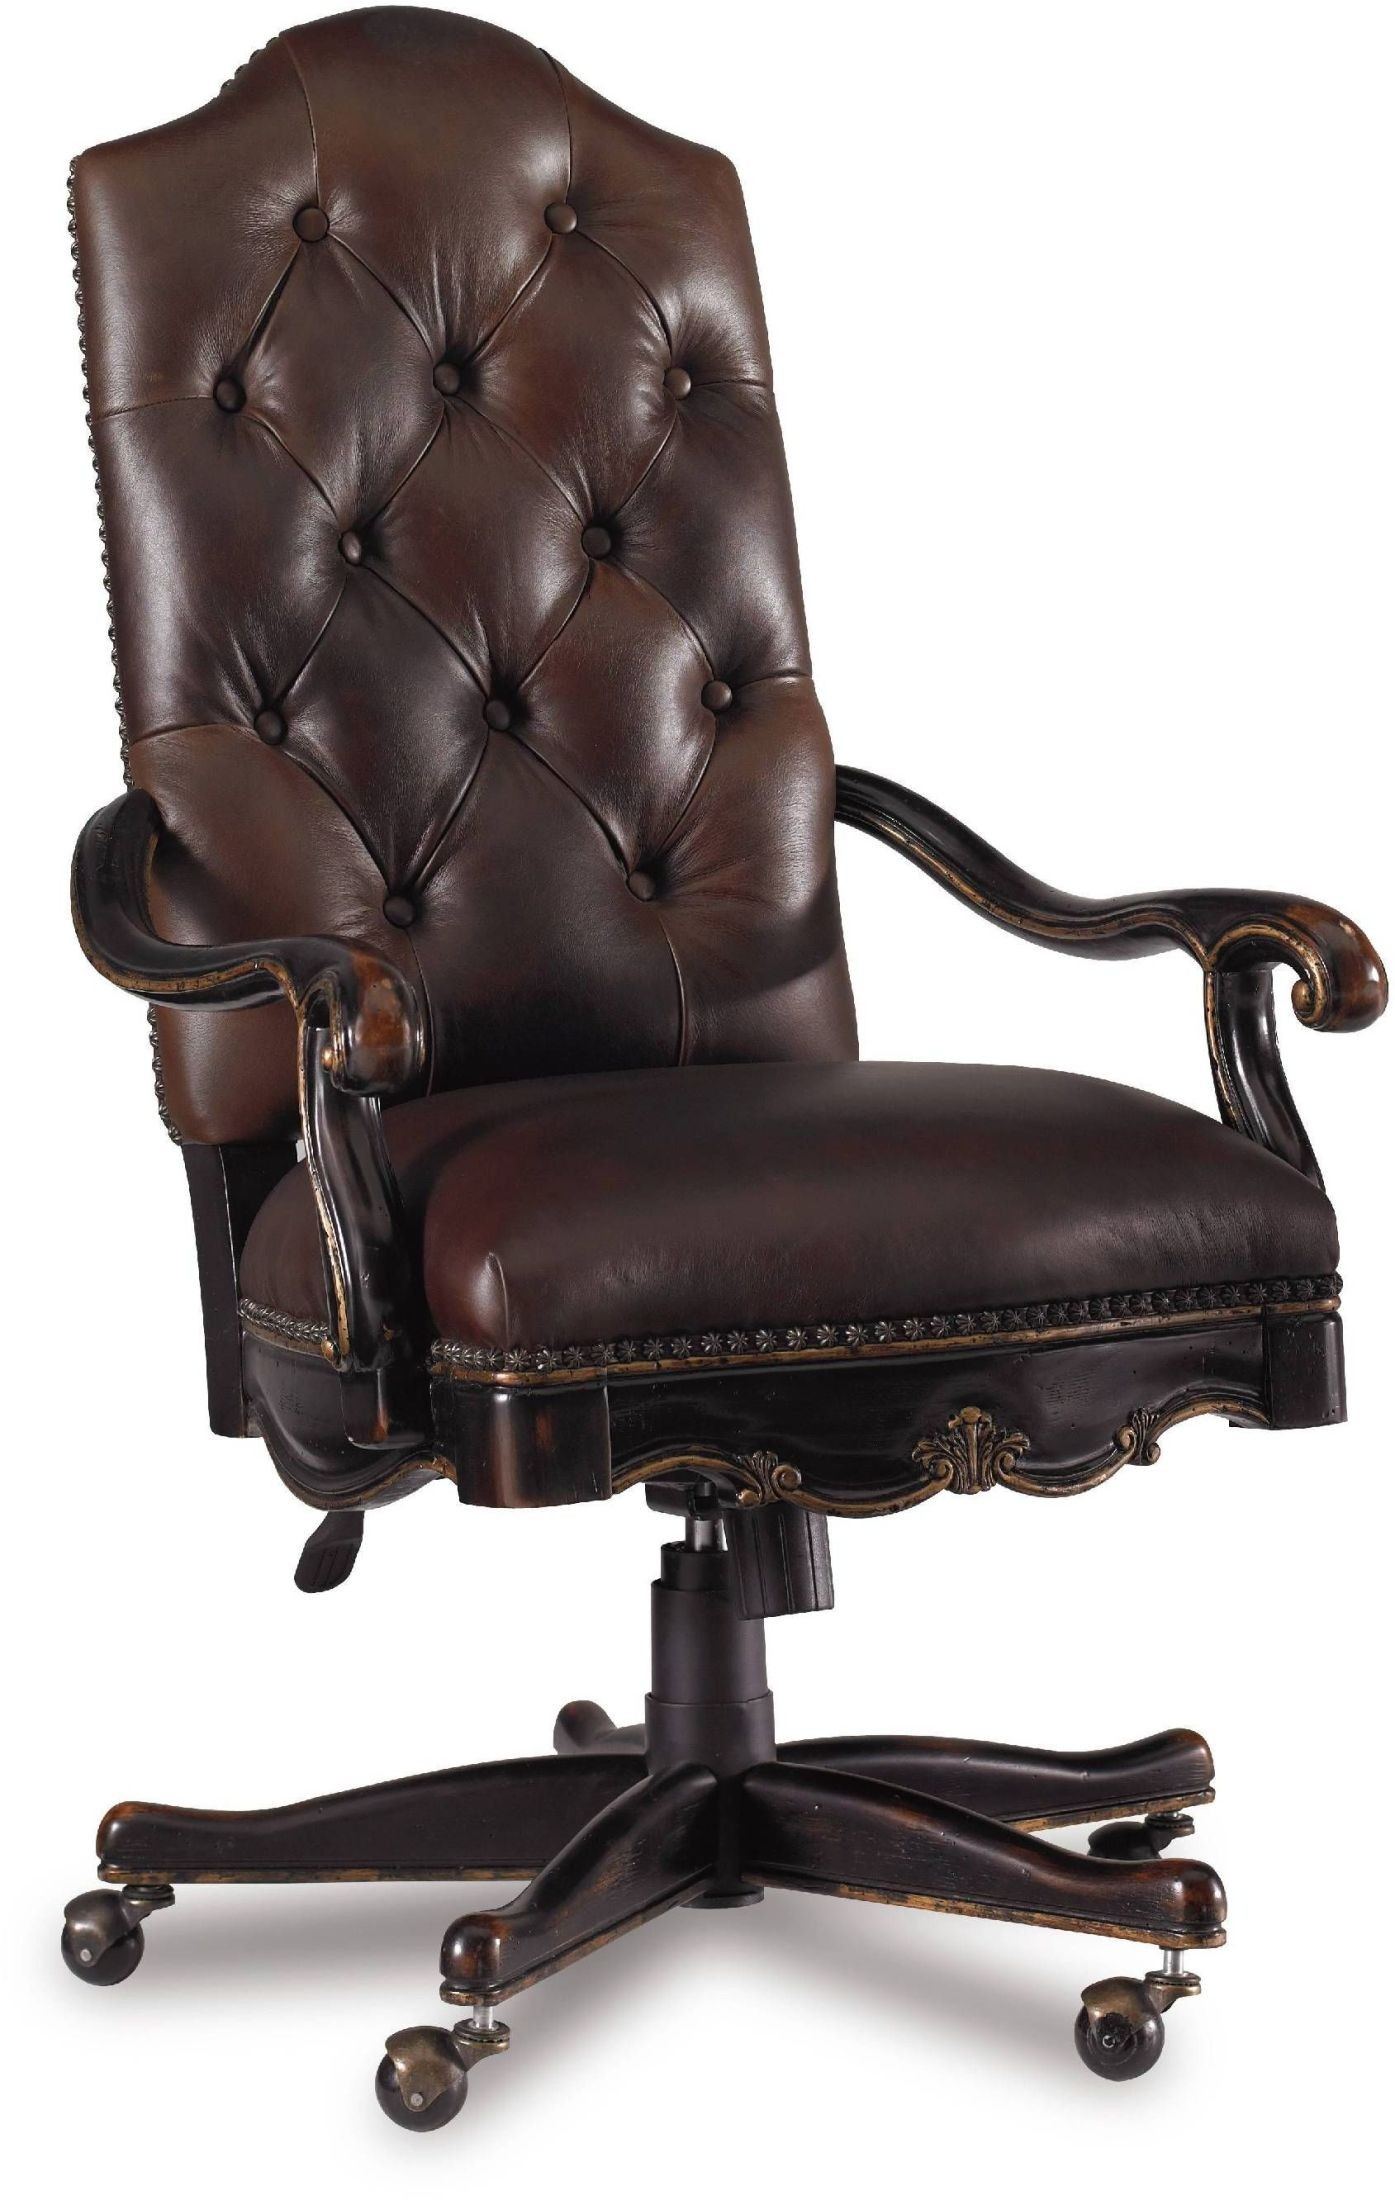 Black Swivel Chair Grandover Black Tilt Swivel Chair 5029 30220 Hooker